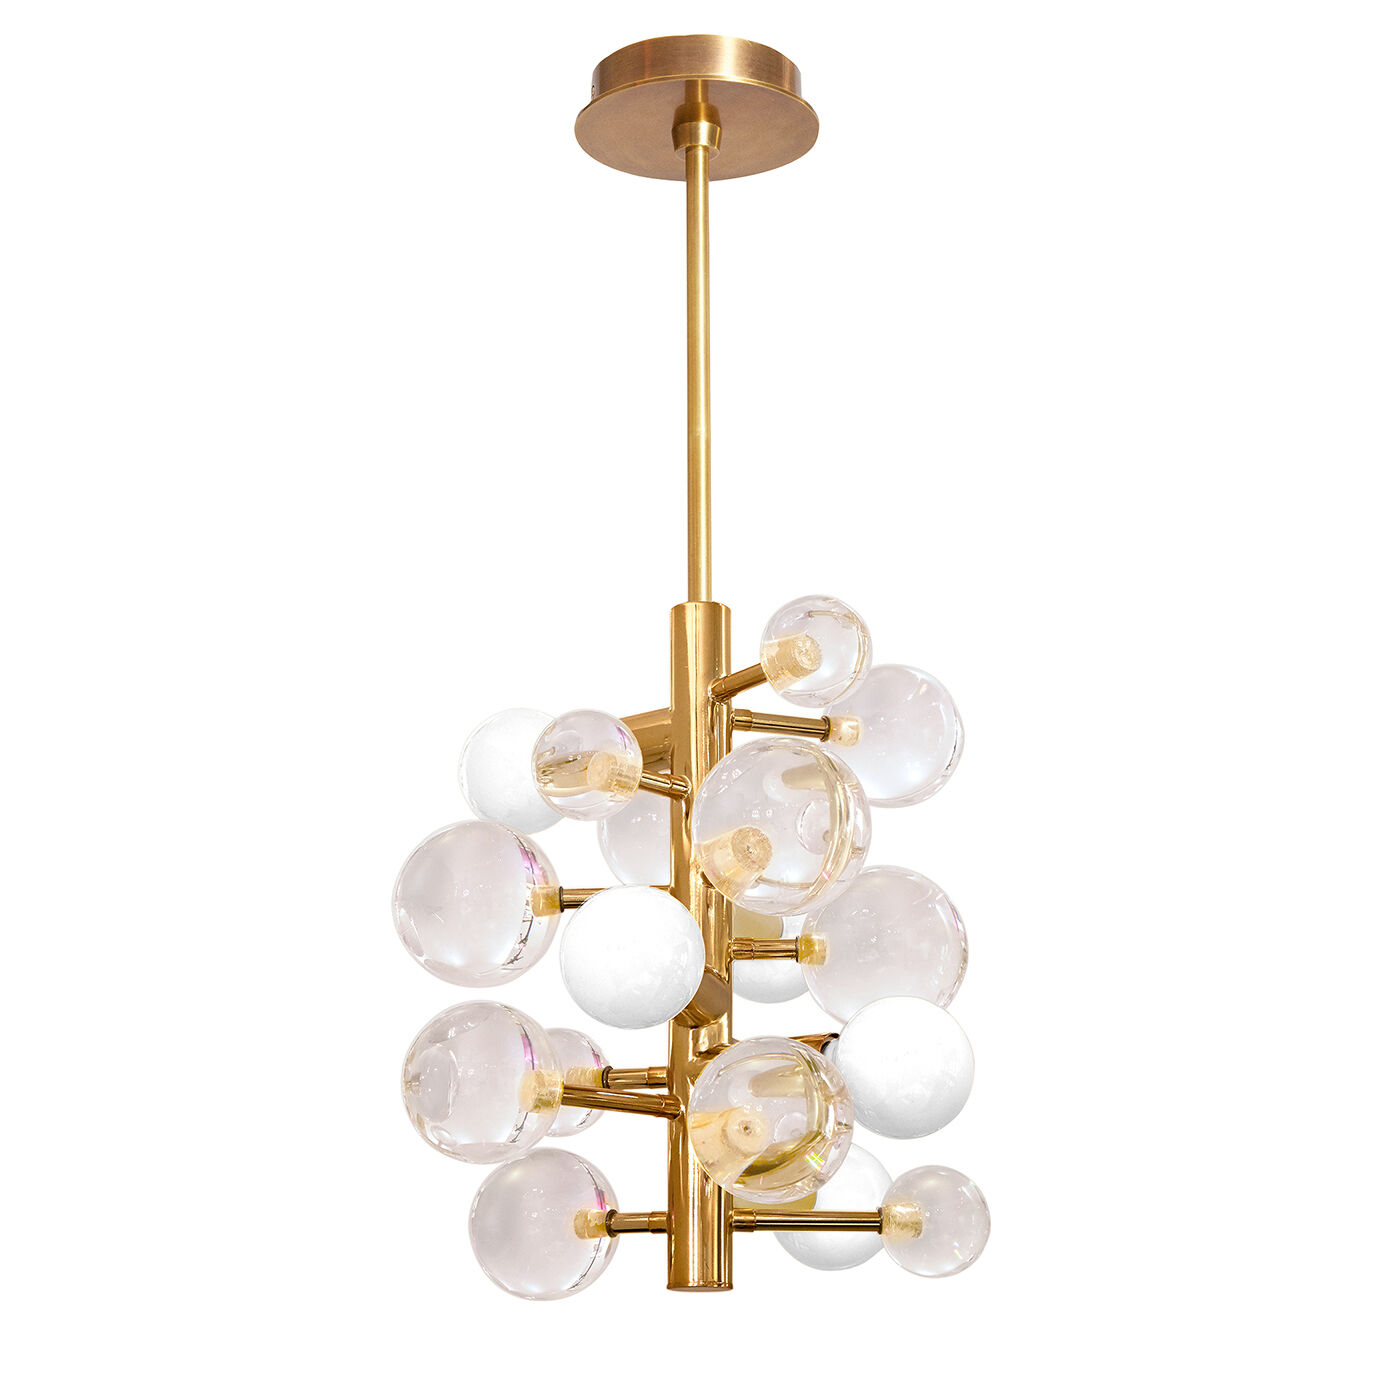 Chandeliers - Globo Five-Light Chandelier  sc 1 st  Jonathan Adler & Globo Clear Five-Light Chandelier | Modern Chandeliers | Jonathan ... azcodes.com